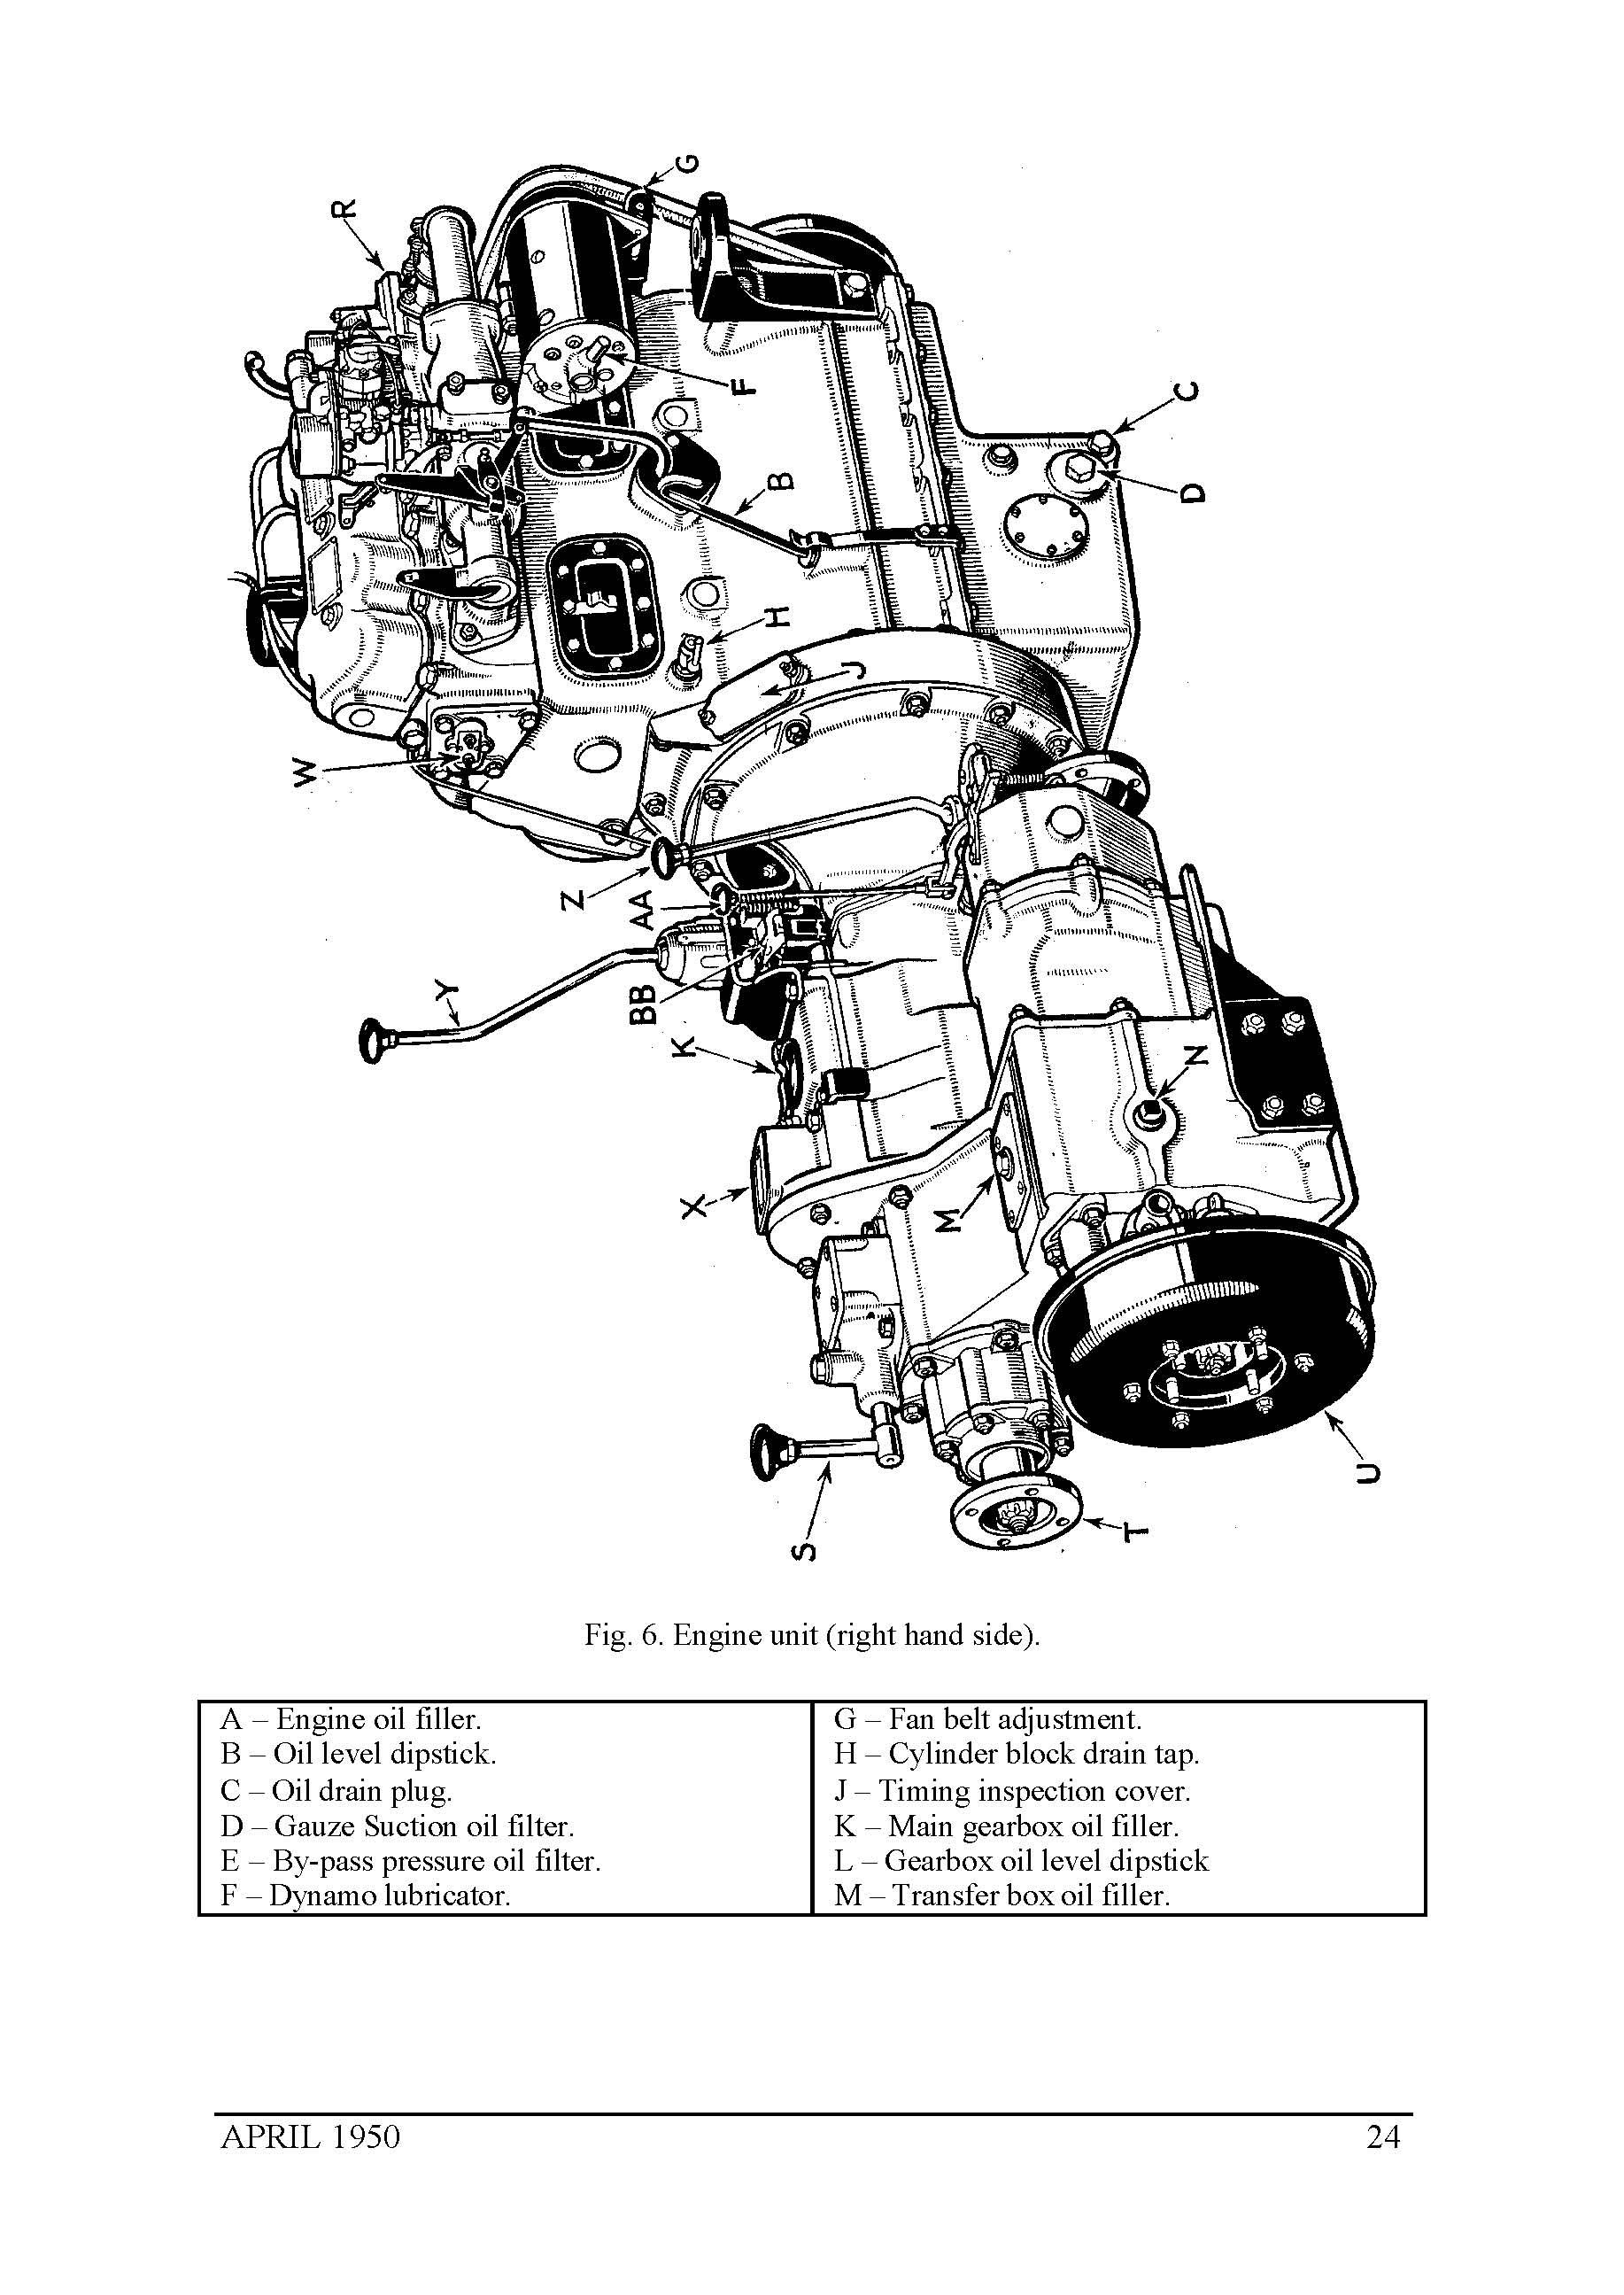 The Landrover engine back in 1951. a manual is available